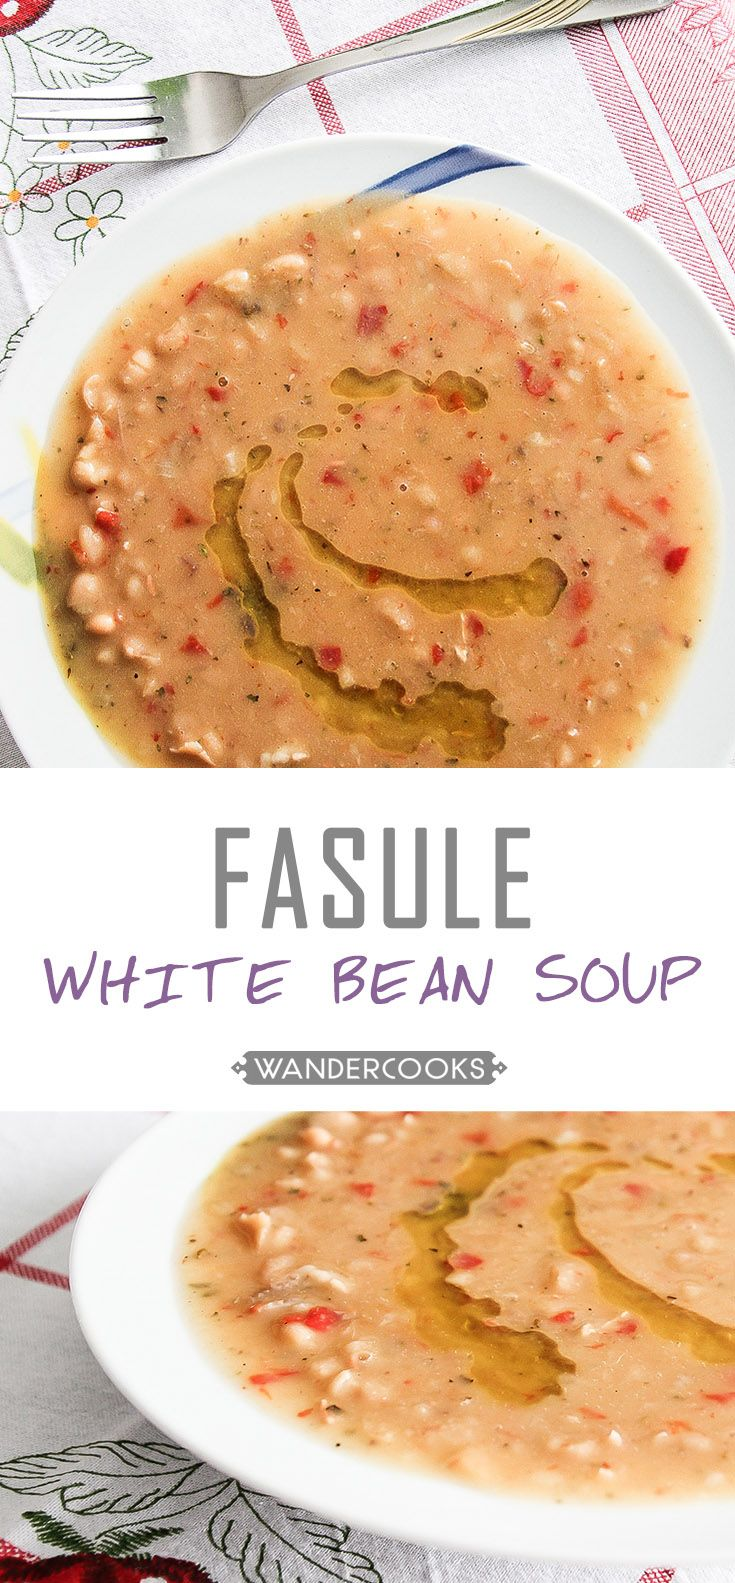 Jani Me Fasule aka White Bean Soup - a light yet filling lunch or dinner that tastes even better the next day.